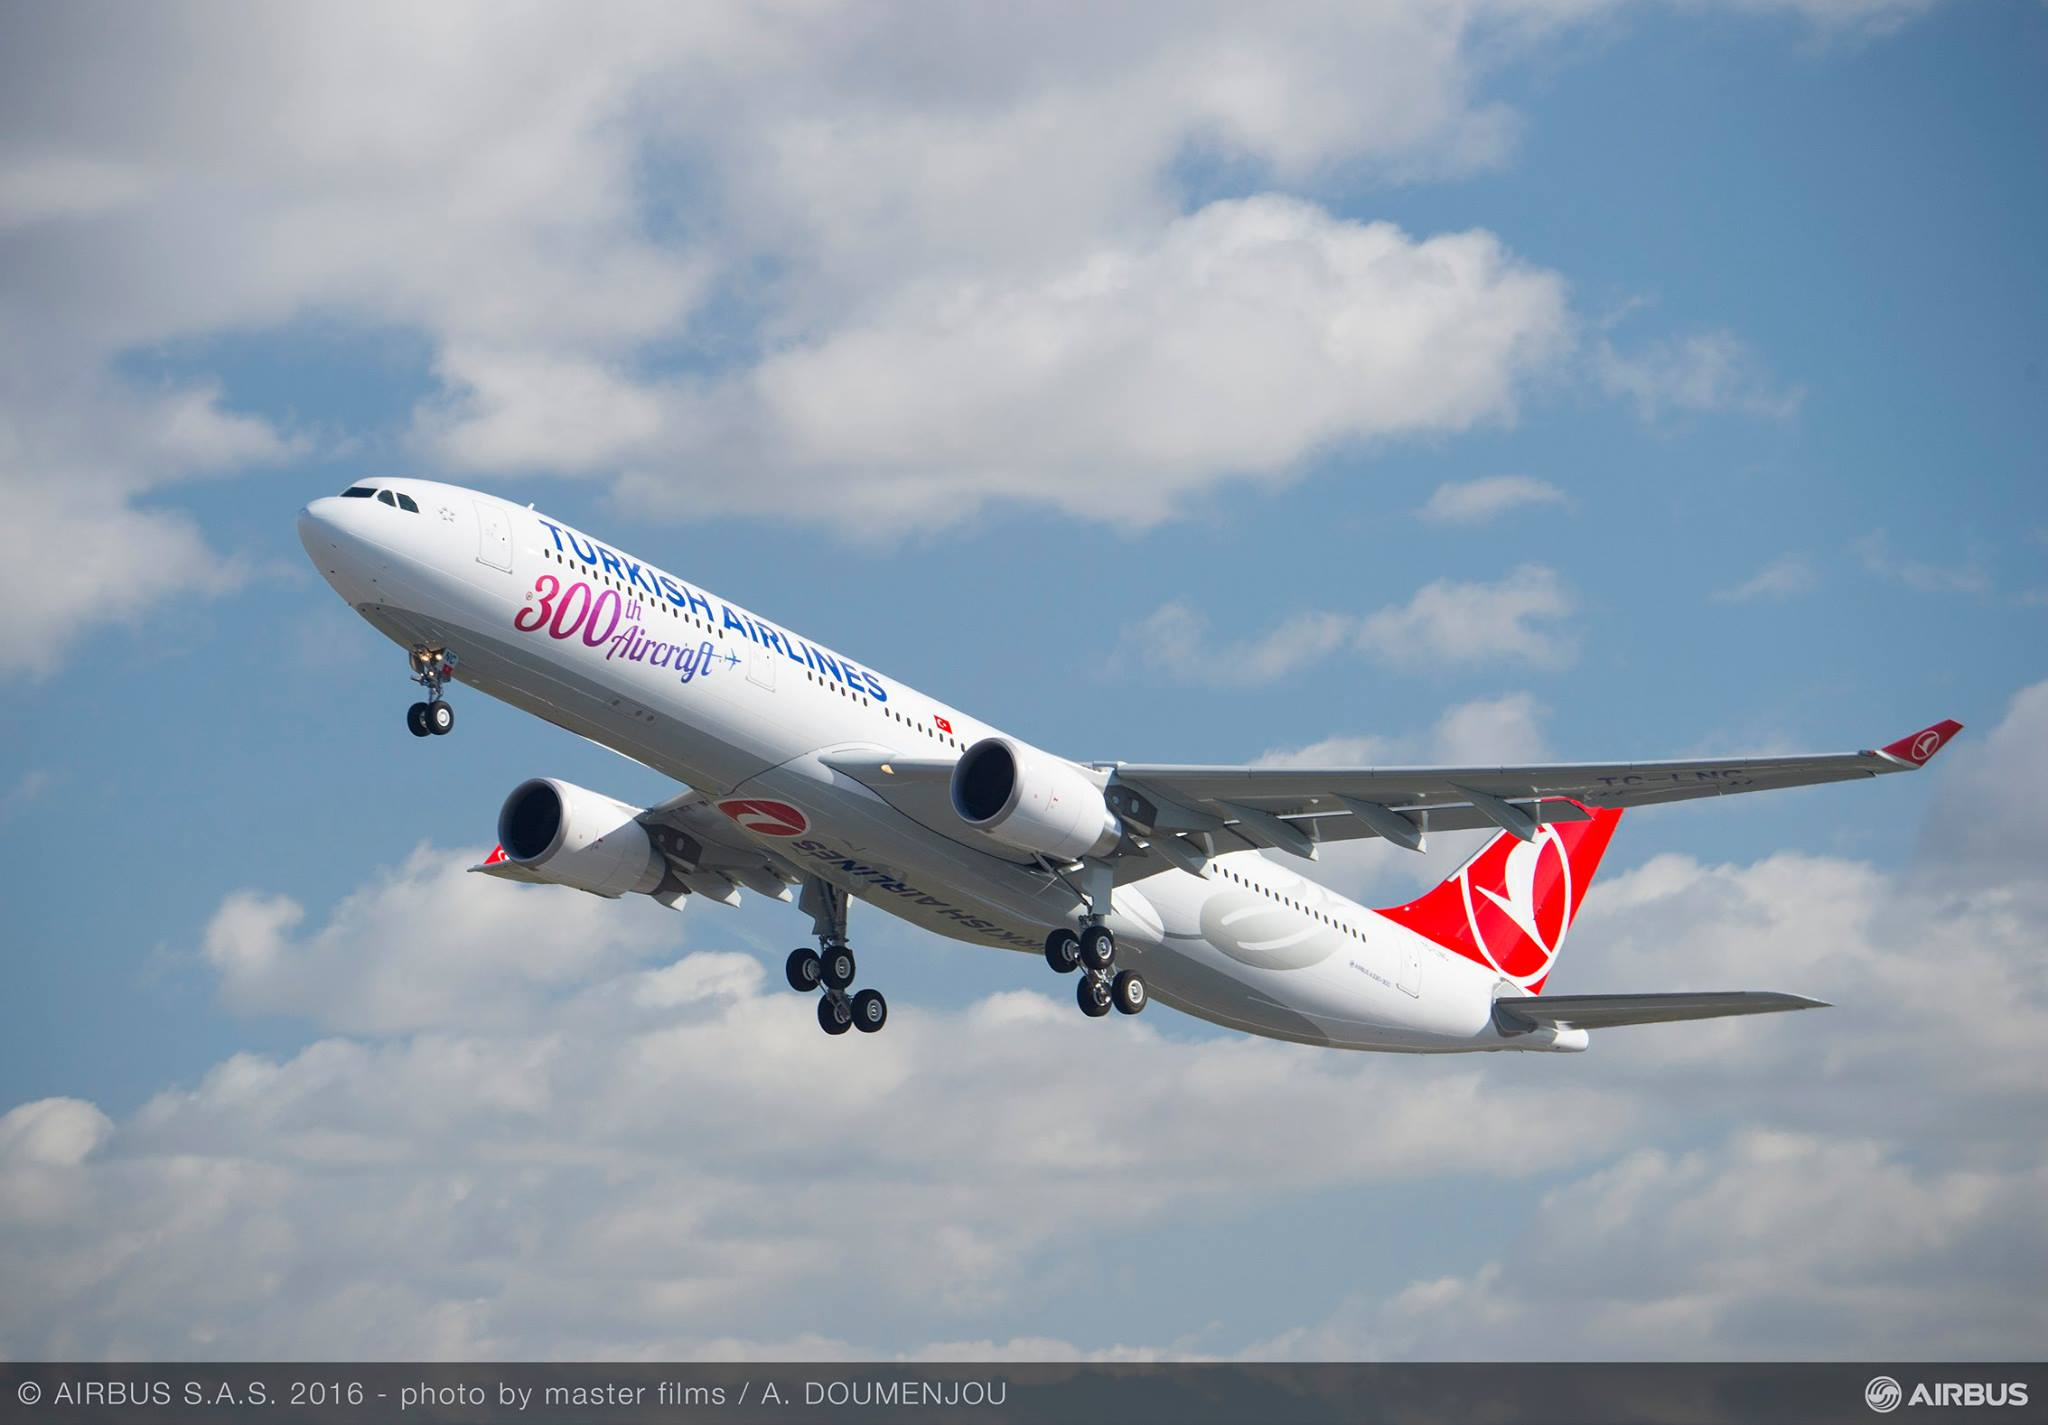 THY_Turkish Airlines_300th aircraft_Airbus A330_Feb 2016_001